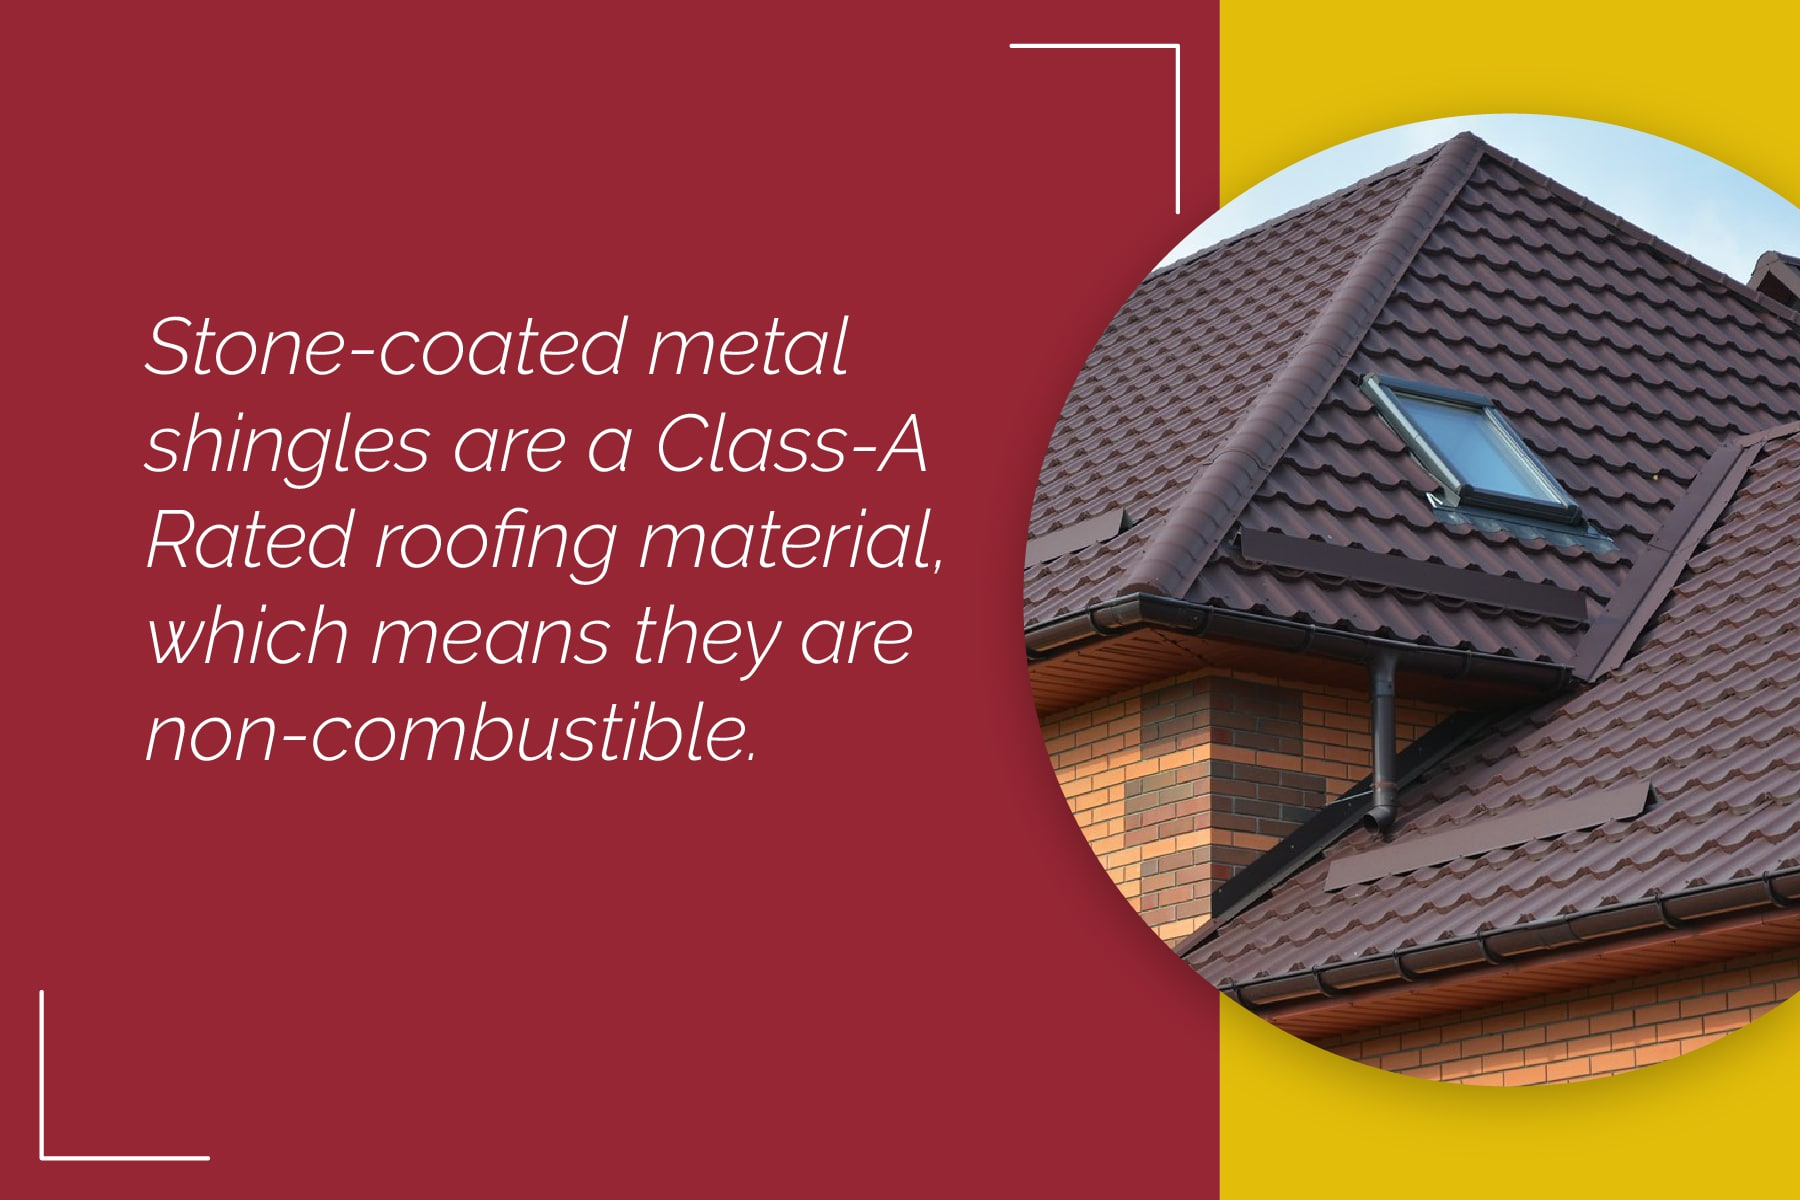 Decra roofing is non combustible